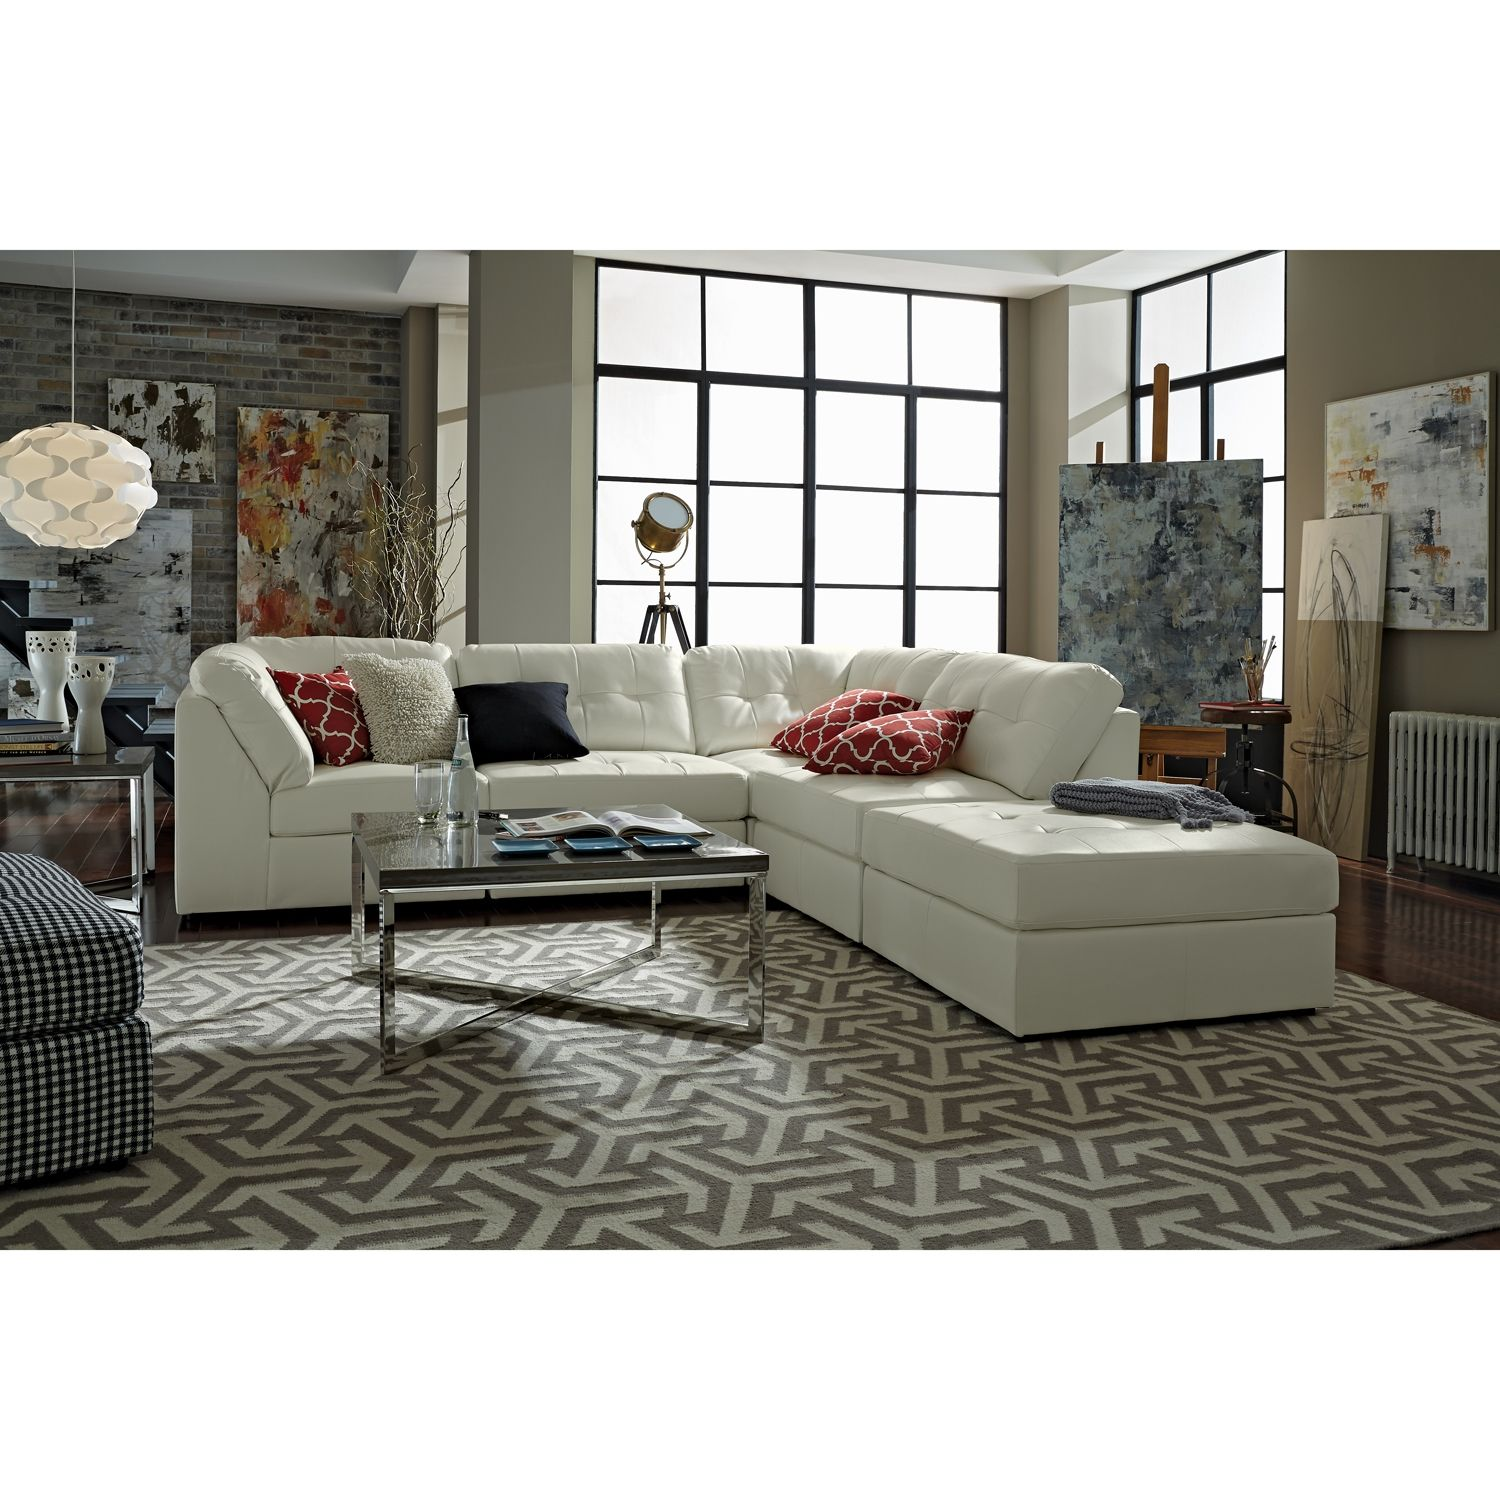 Aventura Ii Leather 5 Pc Sectional And Cocktail Ottoman Value